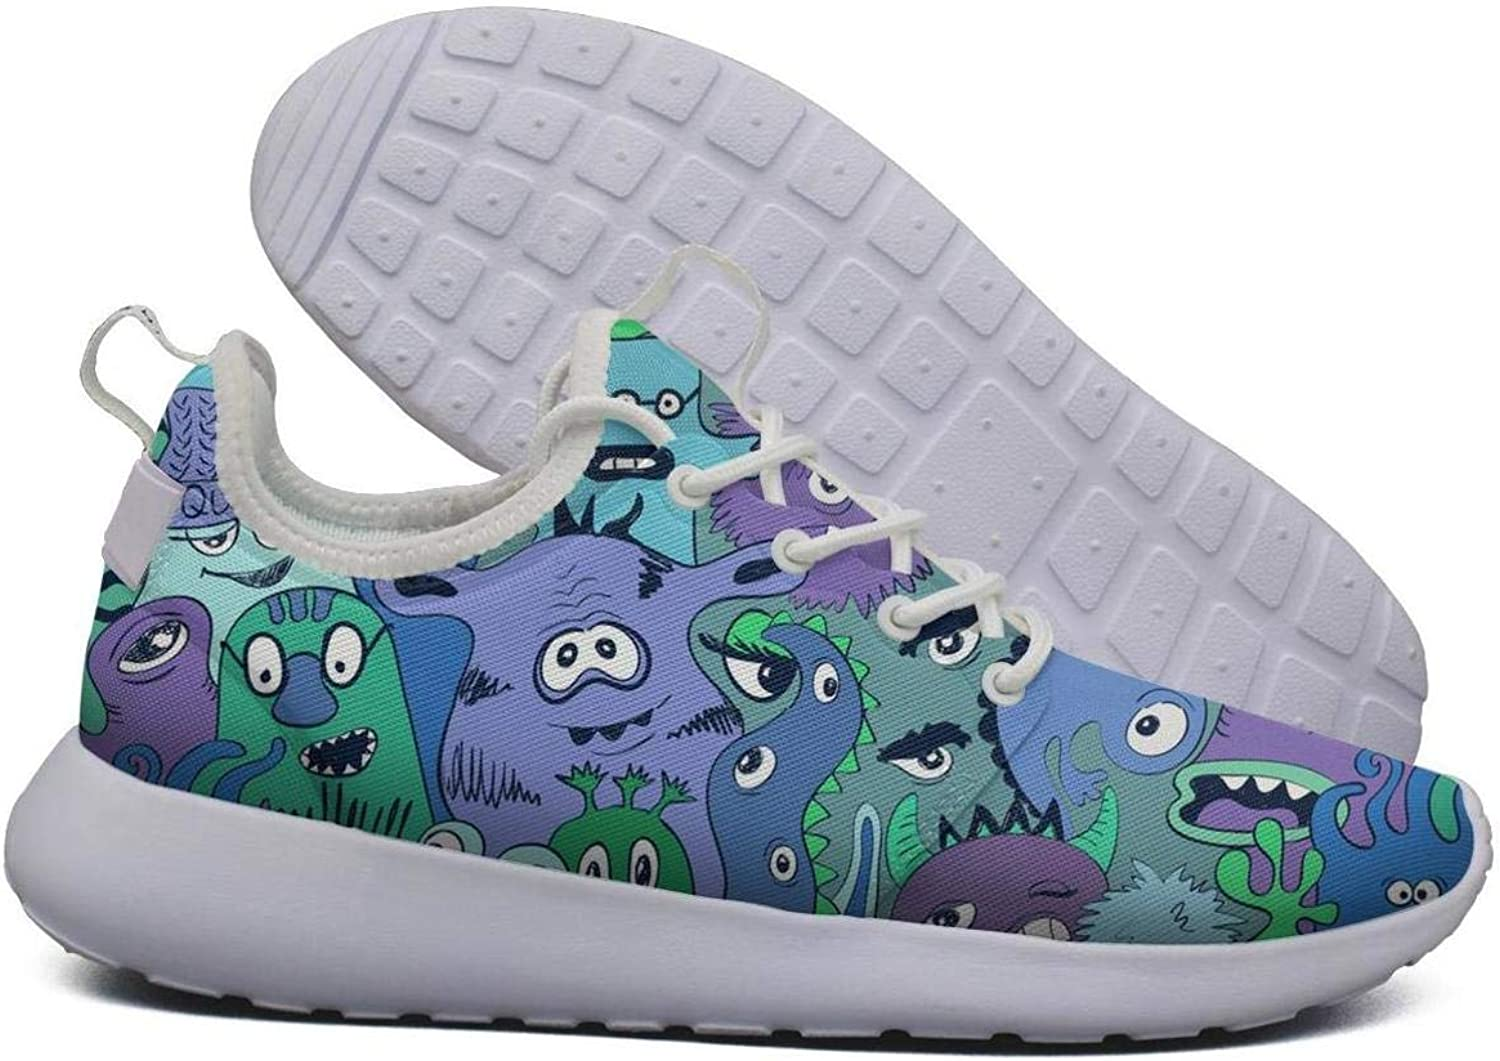 Hoohle Sports Womens Funny Zombies Design Flex Mesh Roshe 2 Lightweight Soft Cross-Trainer shoes